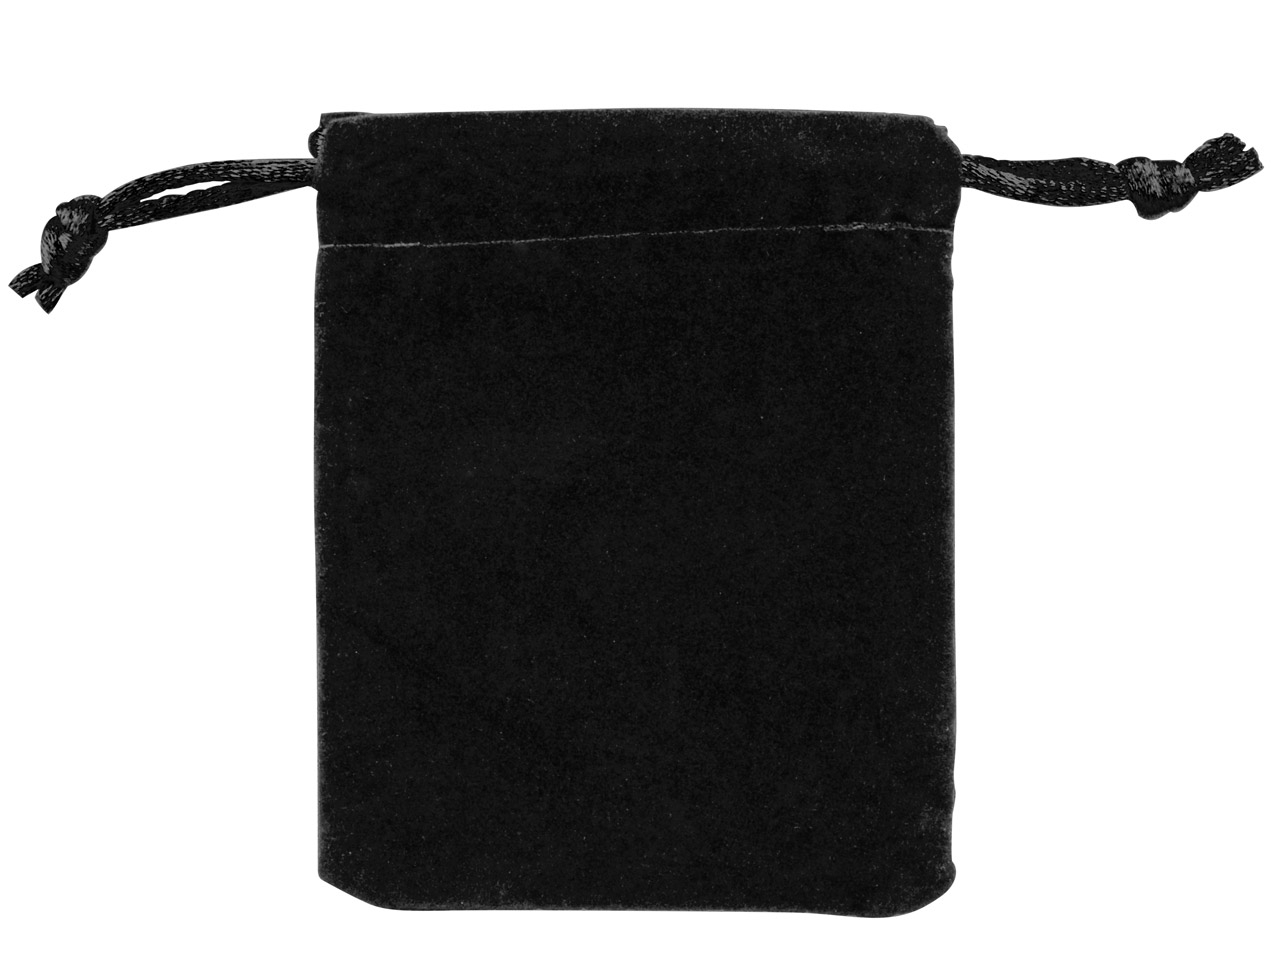 Anti Tarnish Velveteen Drawstring  Pouch, Black, Pack of 10, 2.75